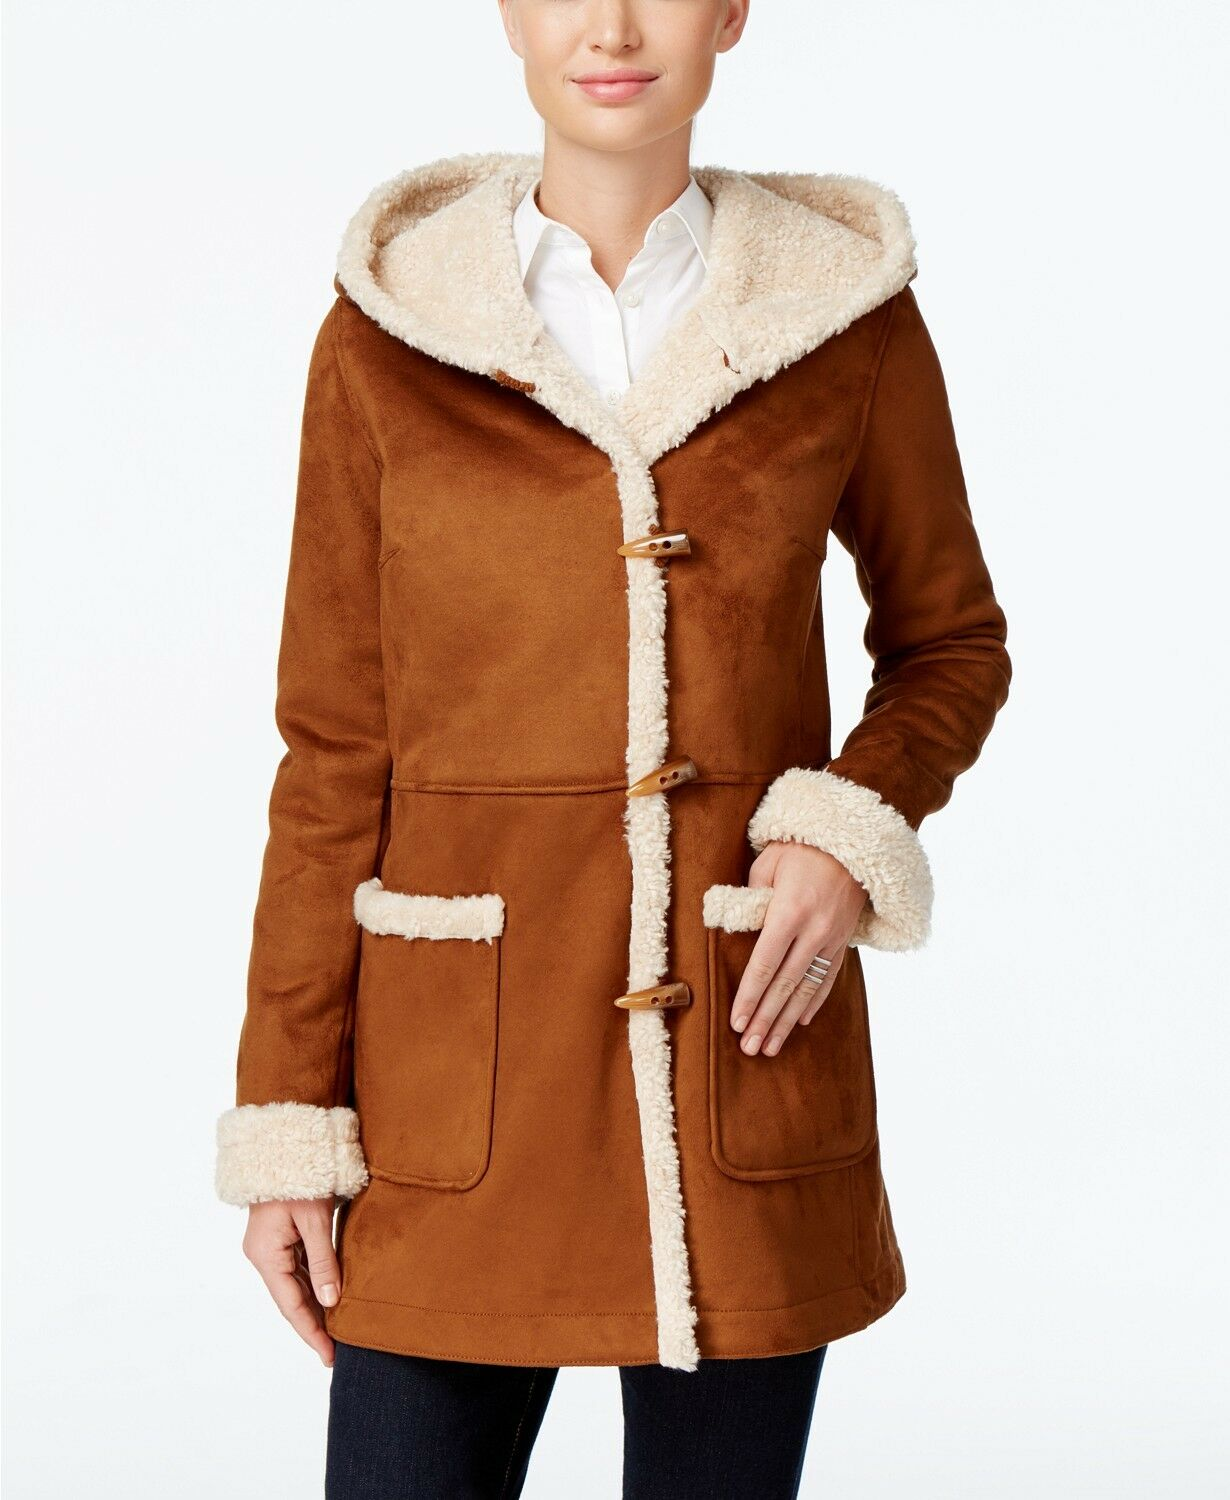 Jones New York Hooded Faux-Shearling Toggle Coat MSRP  Size S WN 215 S N